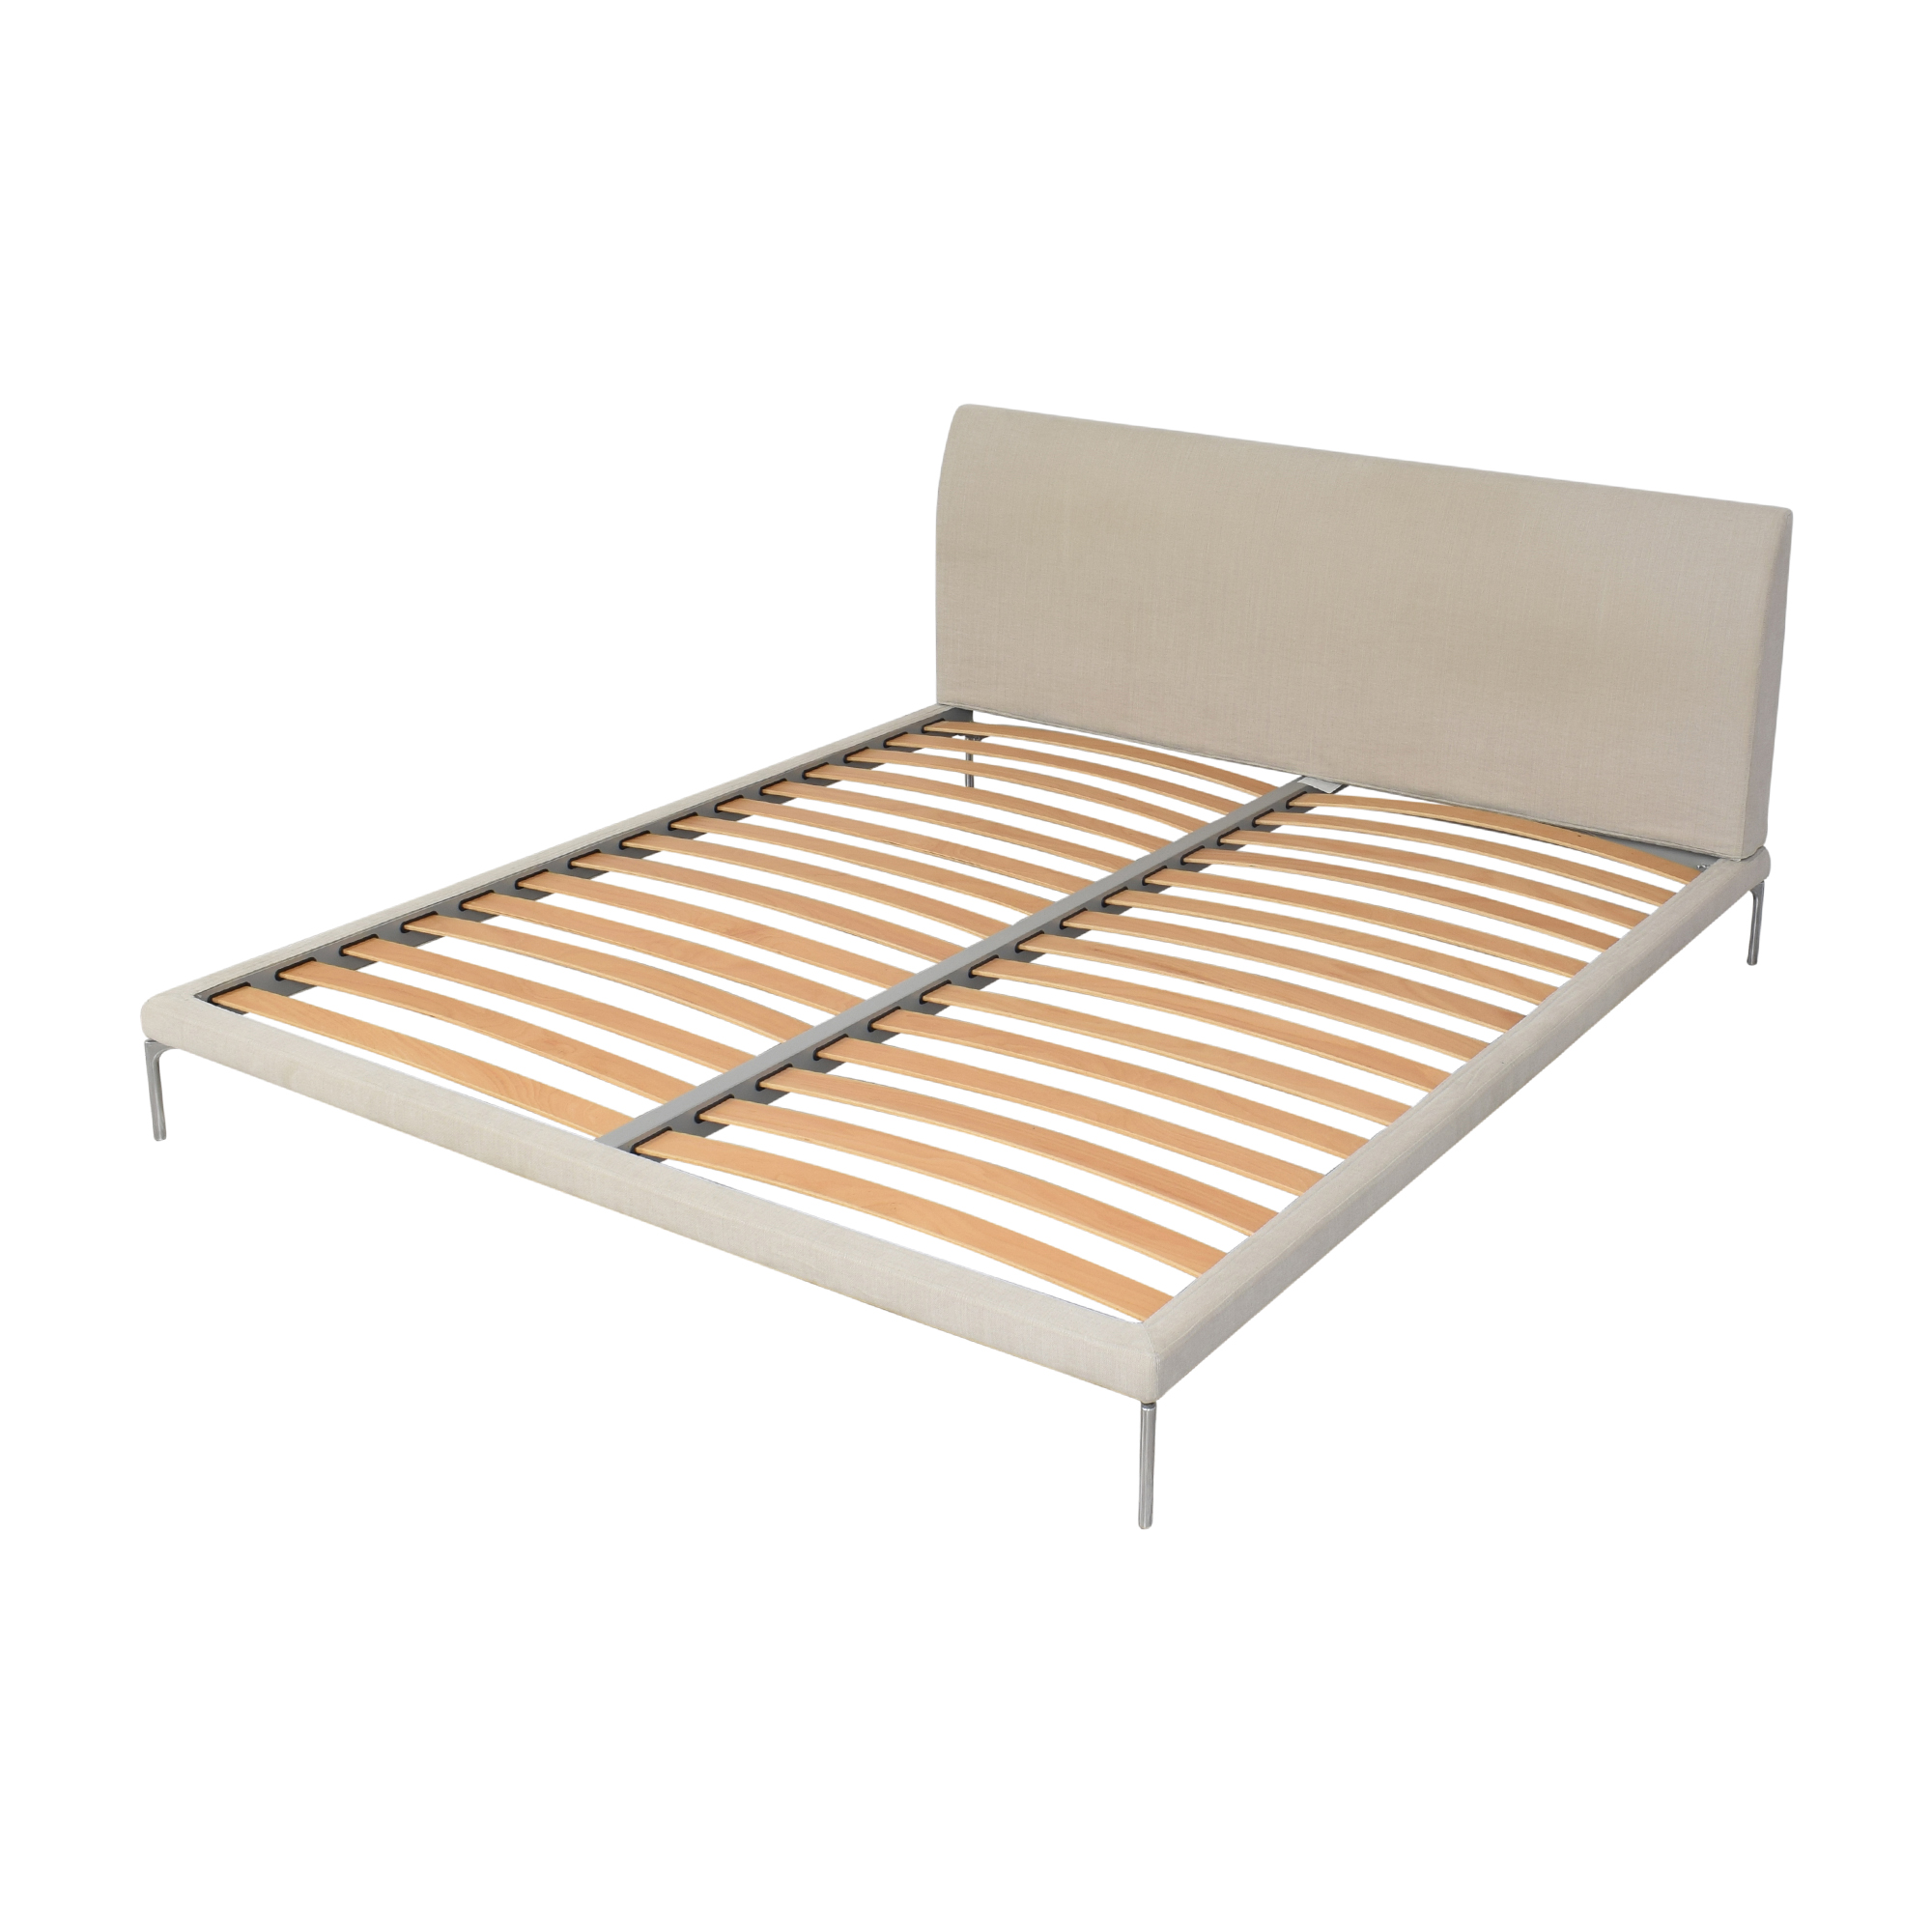 Zanotta Zanotta Telamo King Bed coupon